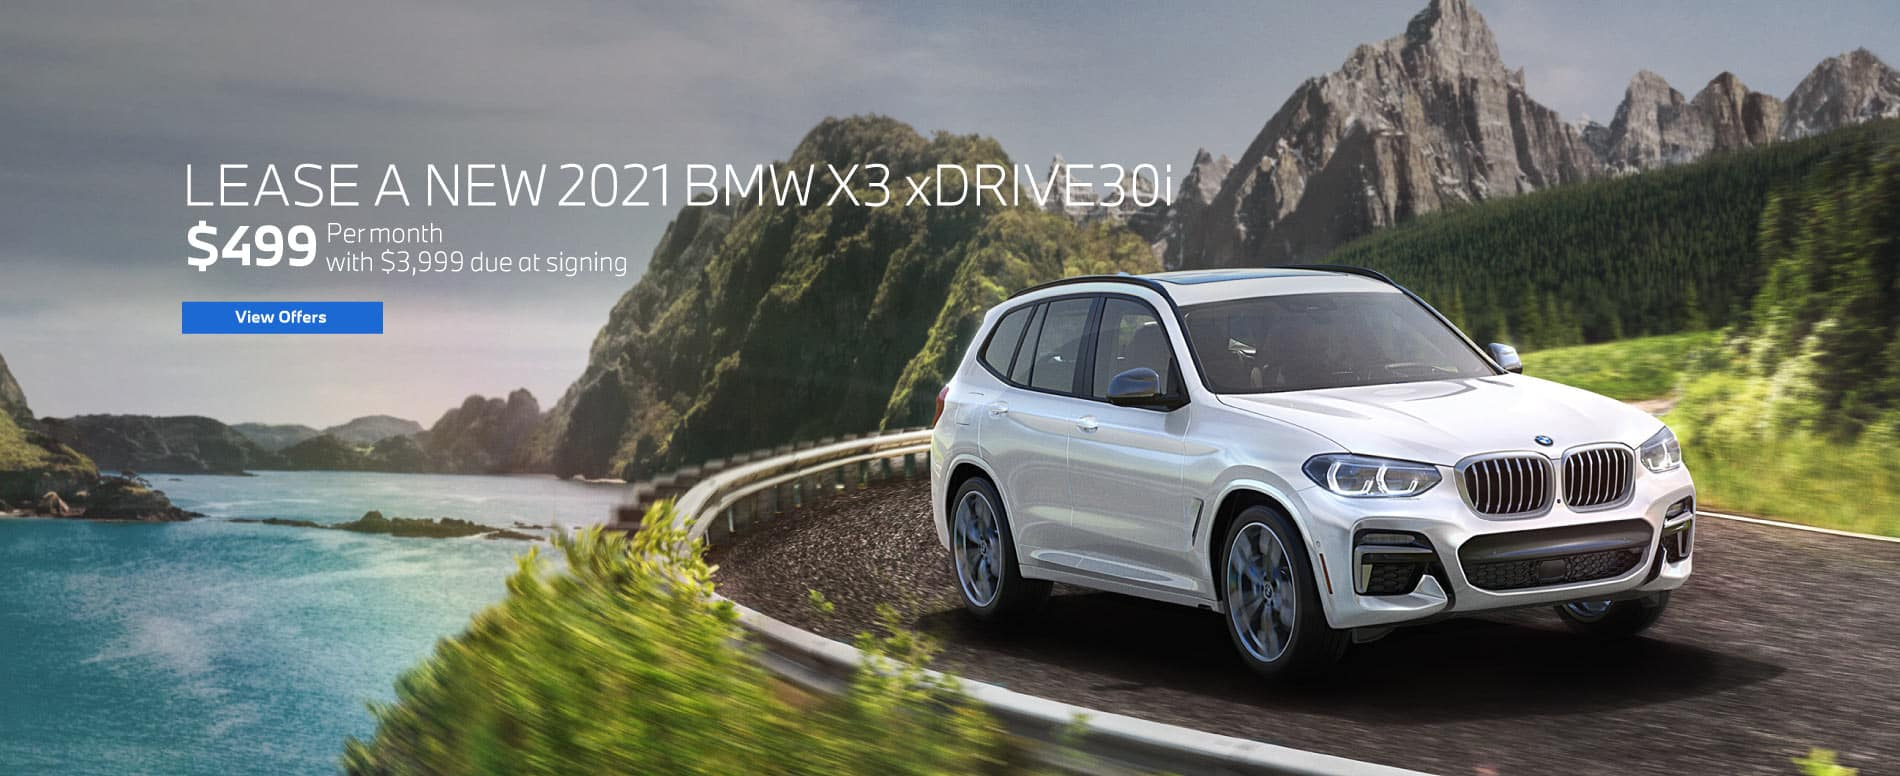 Lease a 2021 X3 xDrive30i for $499 a month | View Inventory